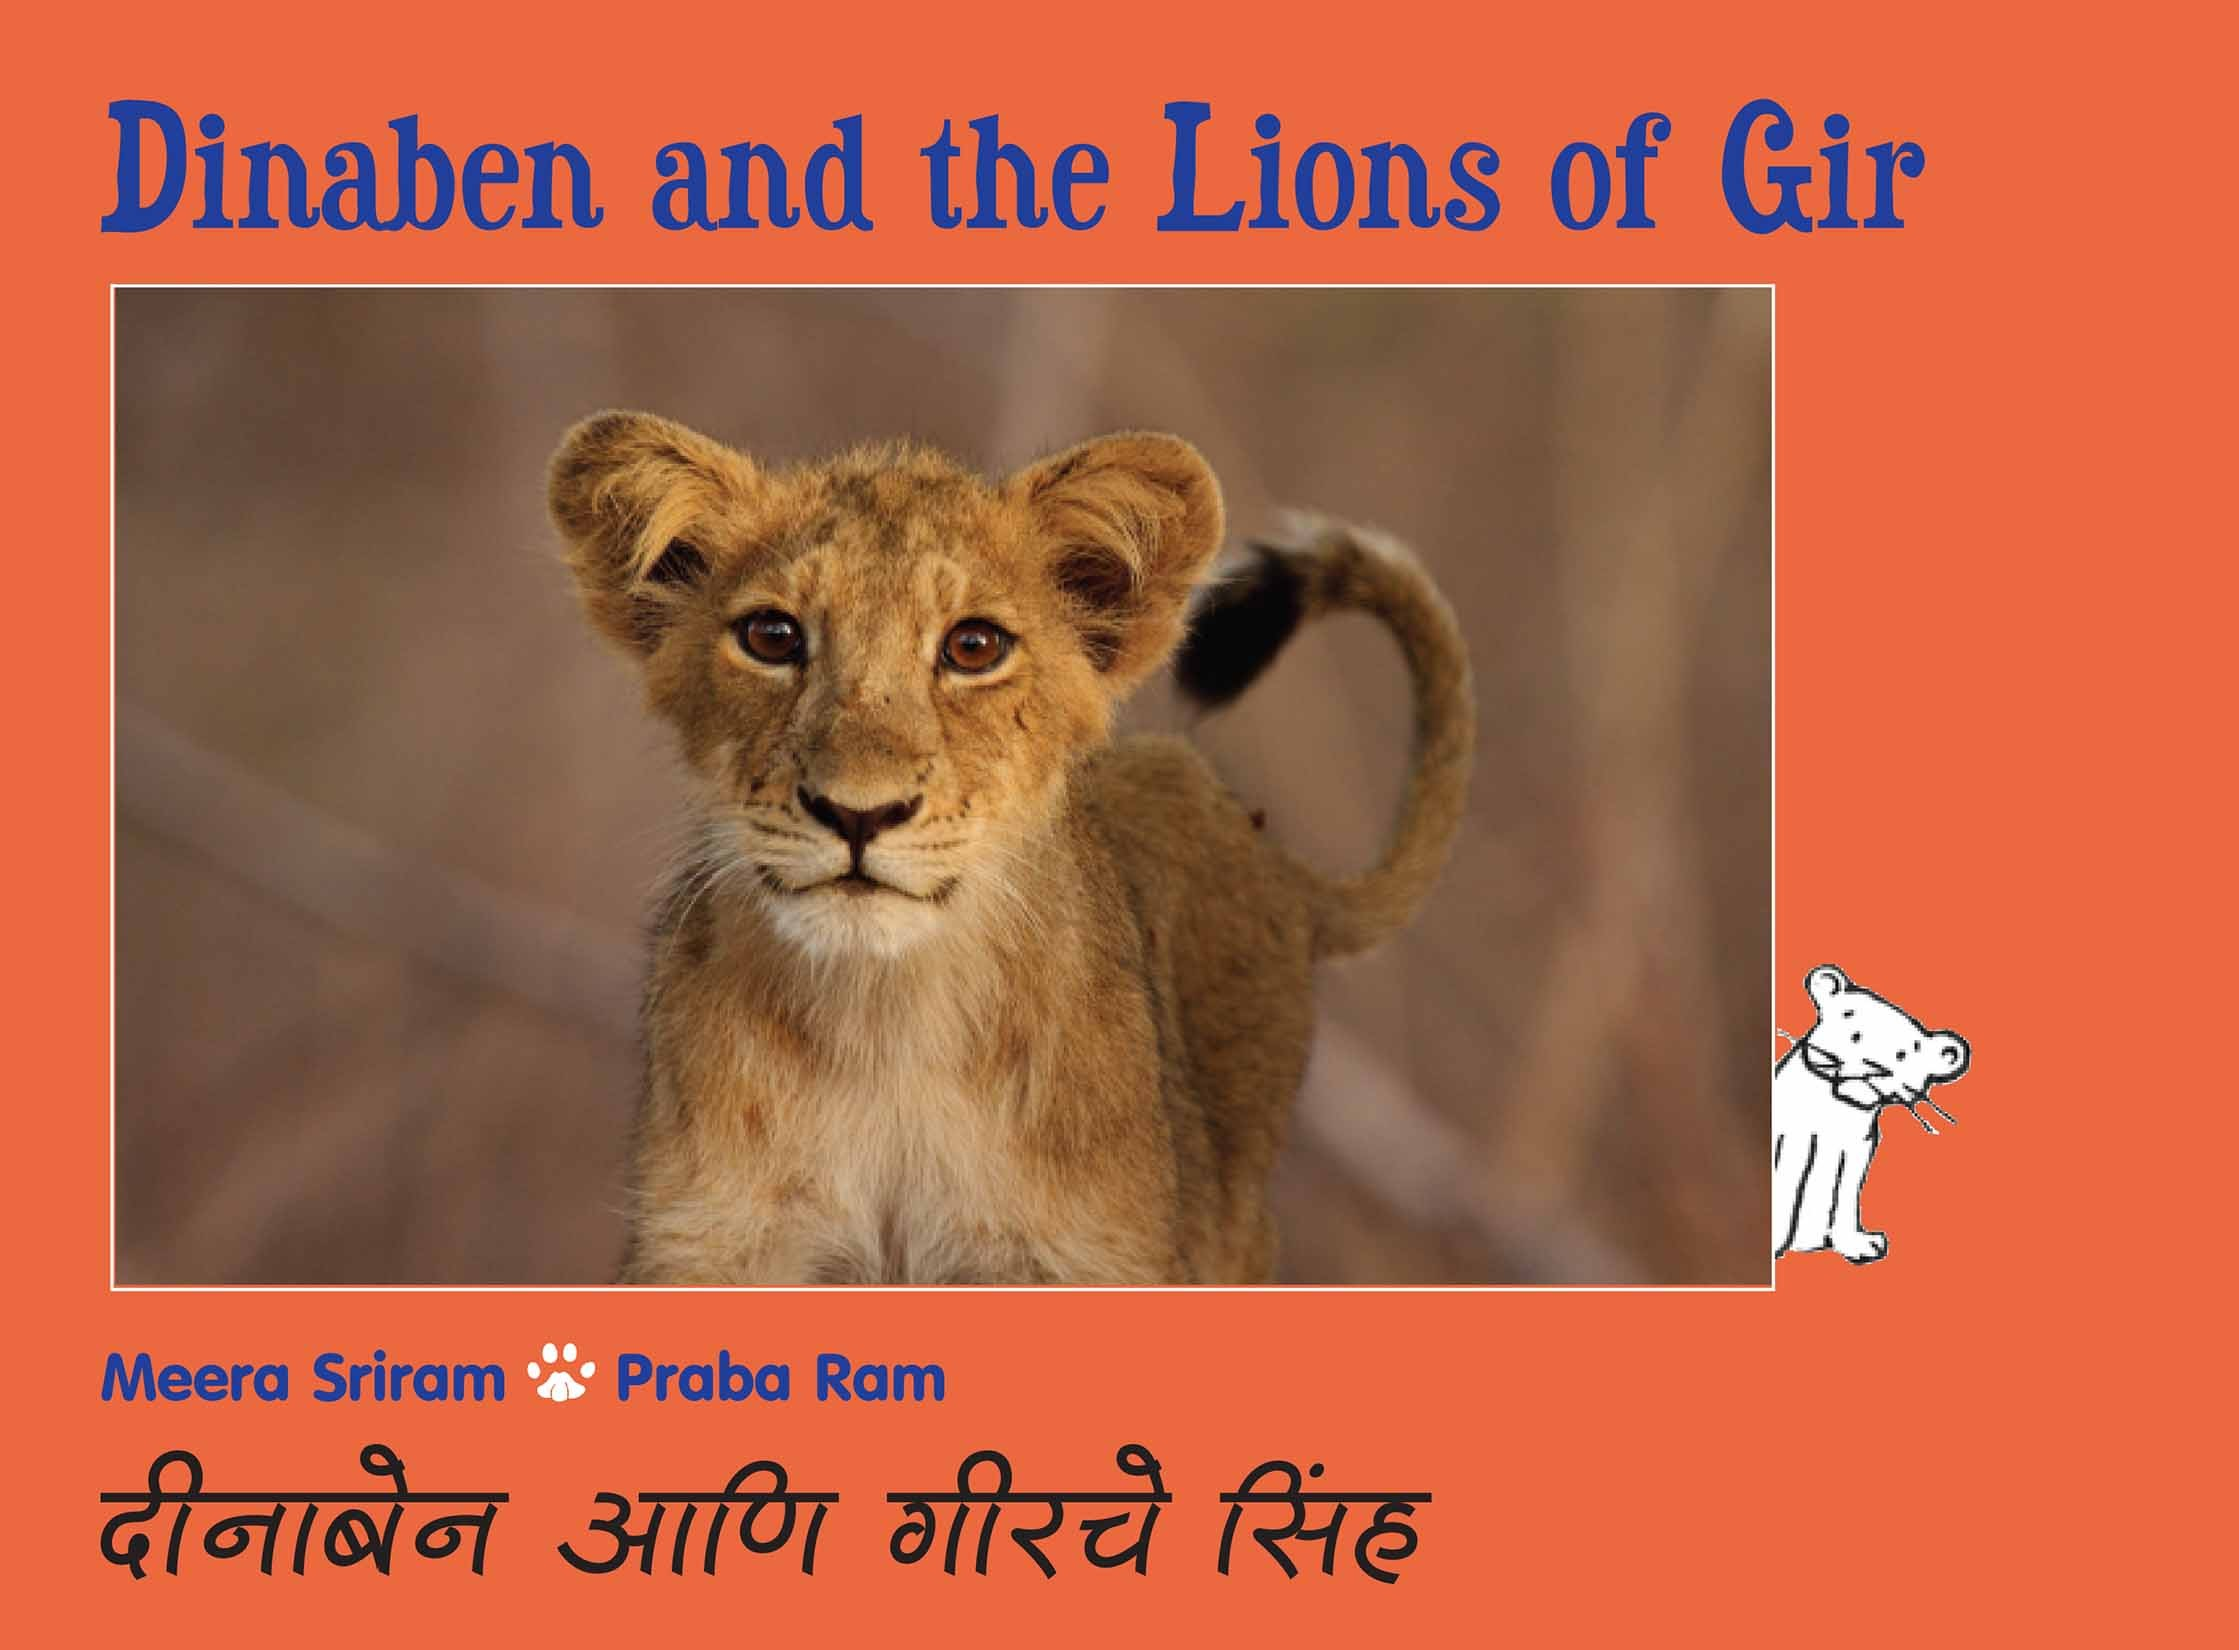 essay on lion in marathi Tilak essay in marathi kesari (the lion), published in marathi, and the mahratta return to content 1 through 30 essay lion marathi save essay information of lion in marathi contextual translation of marathi essay on lion into hindi mar 4, 2018.